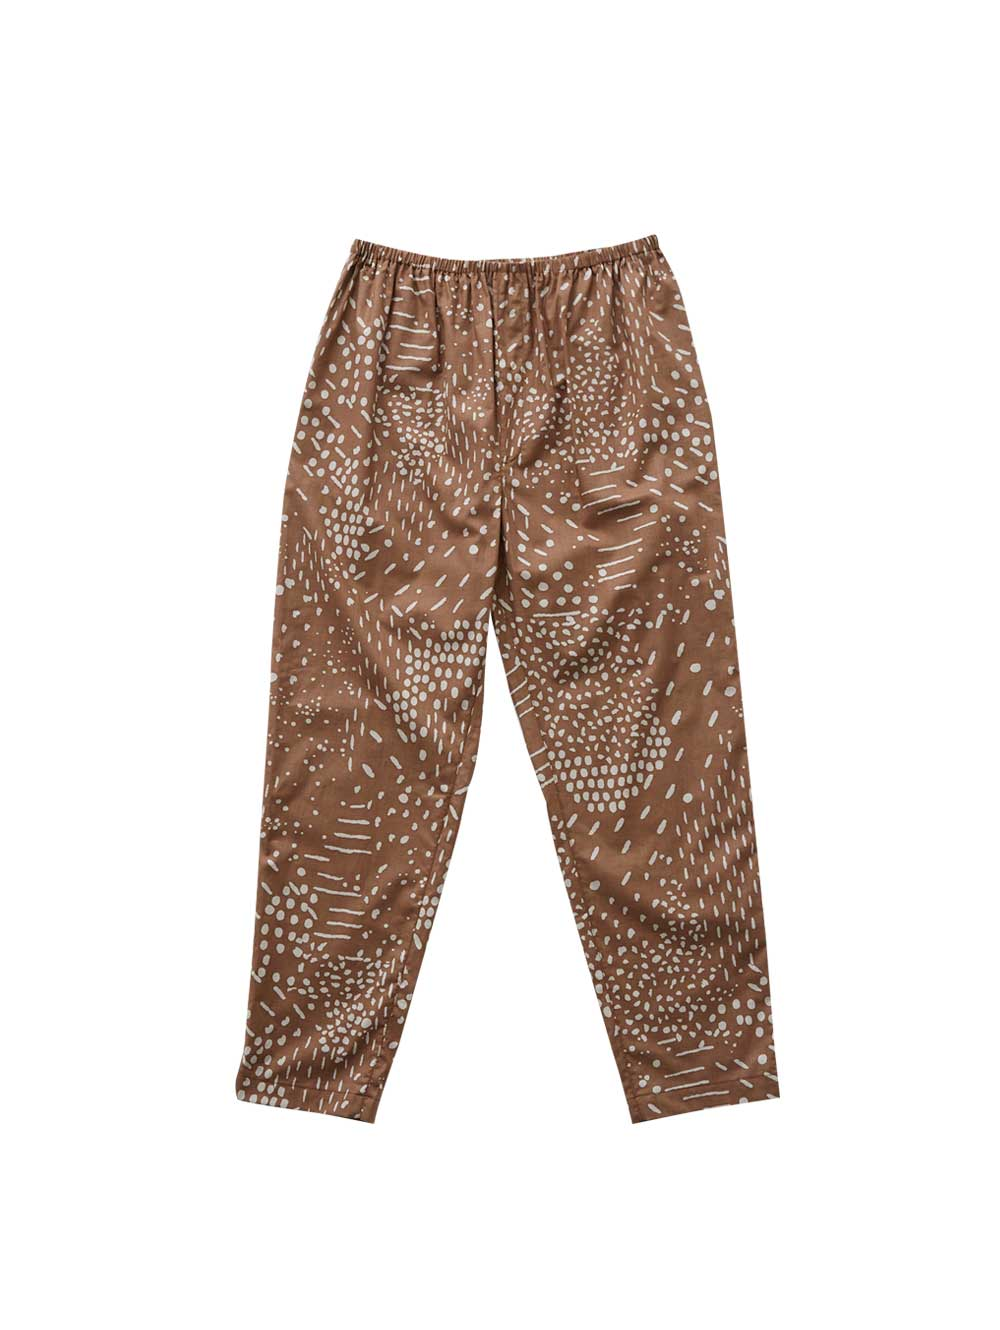 Brown Woman's Qilin Pants